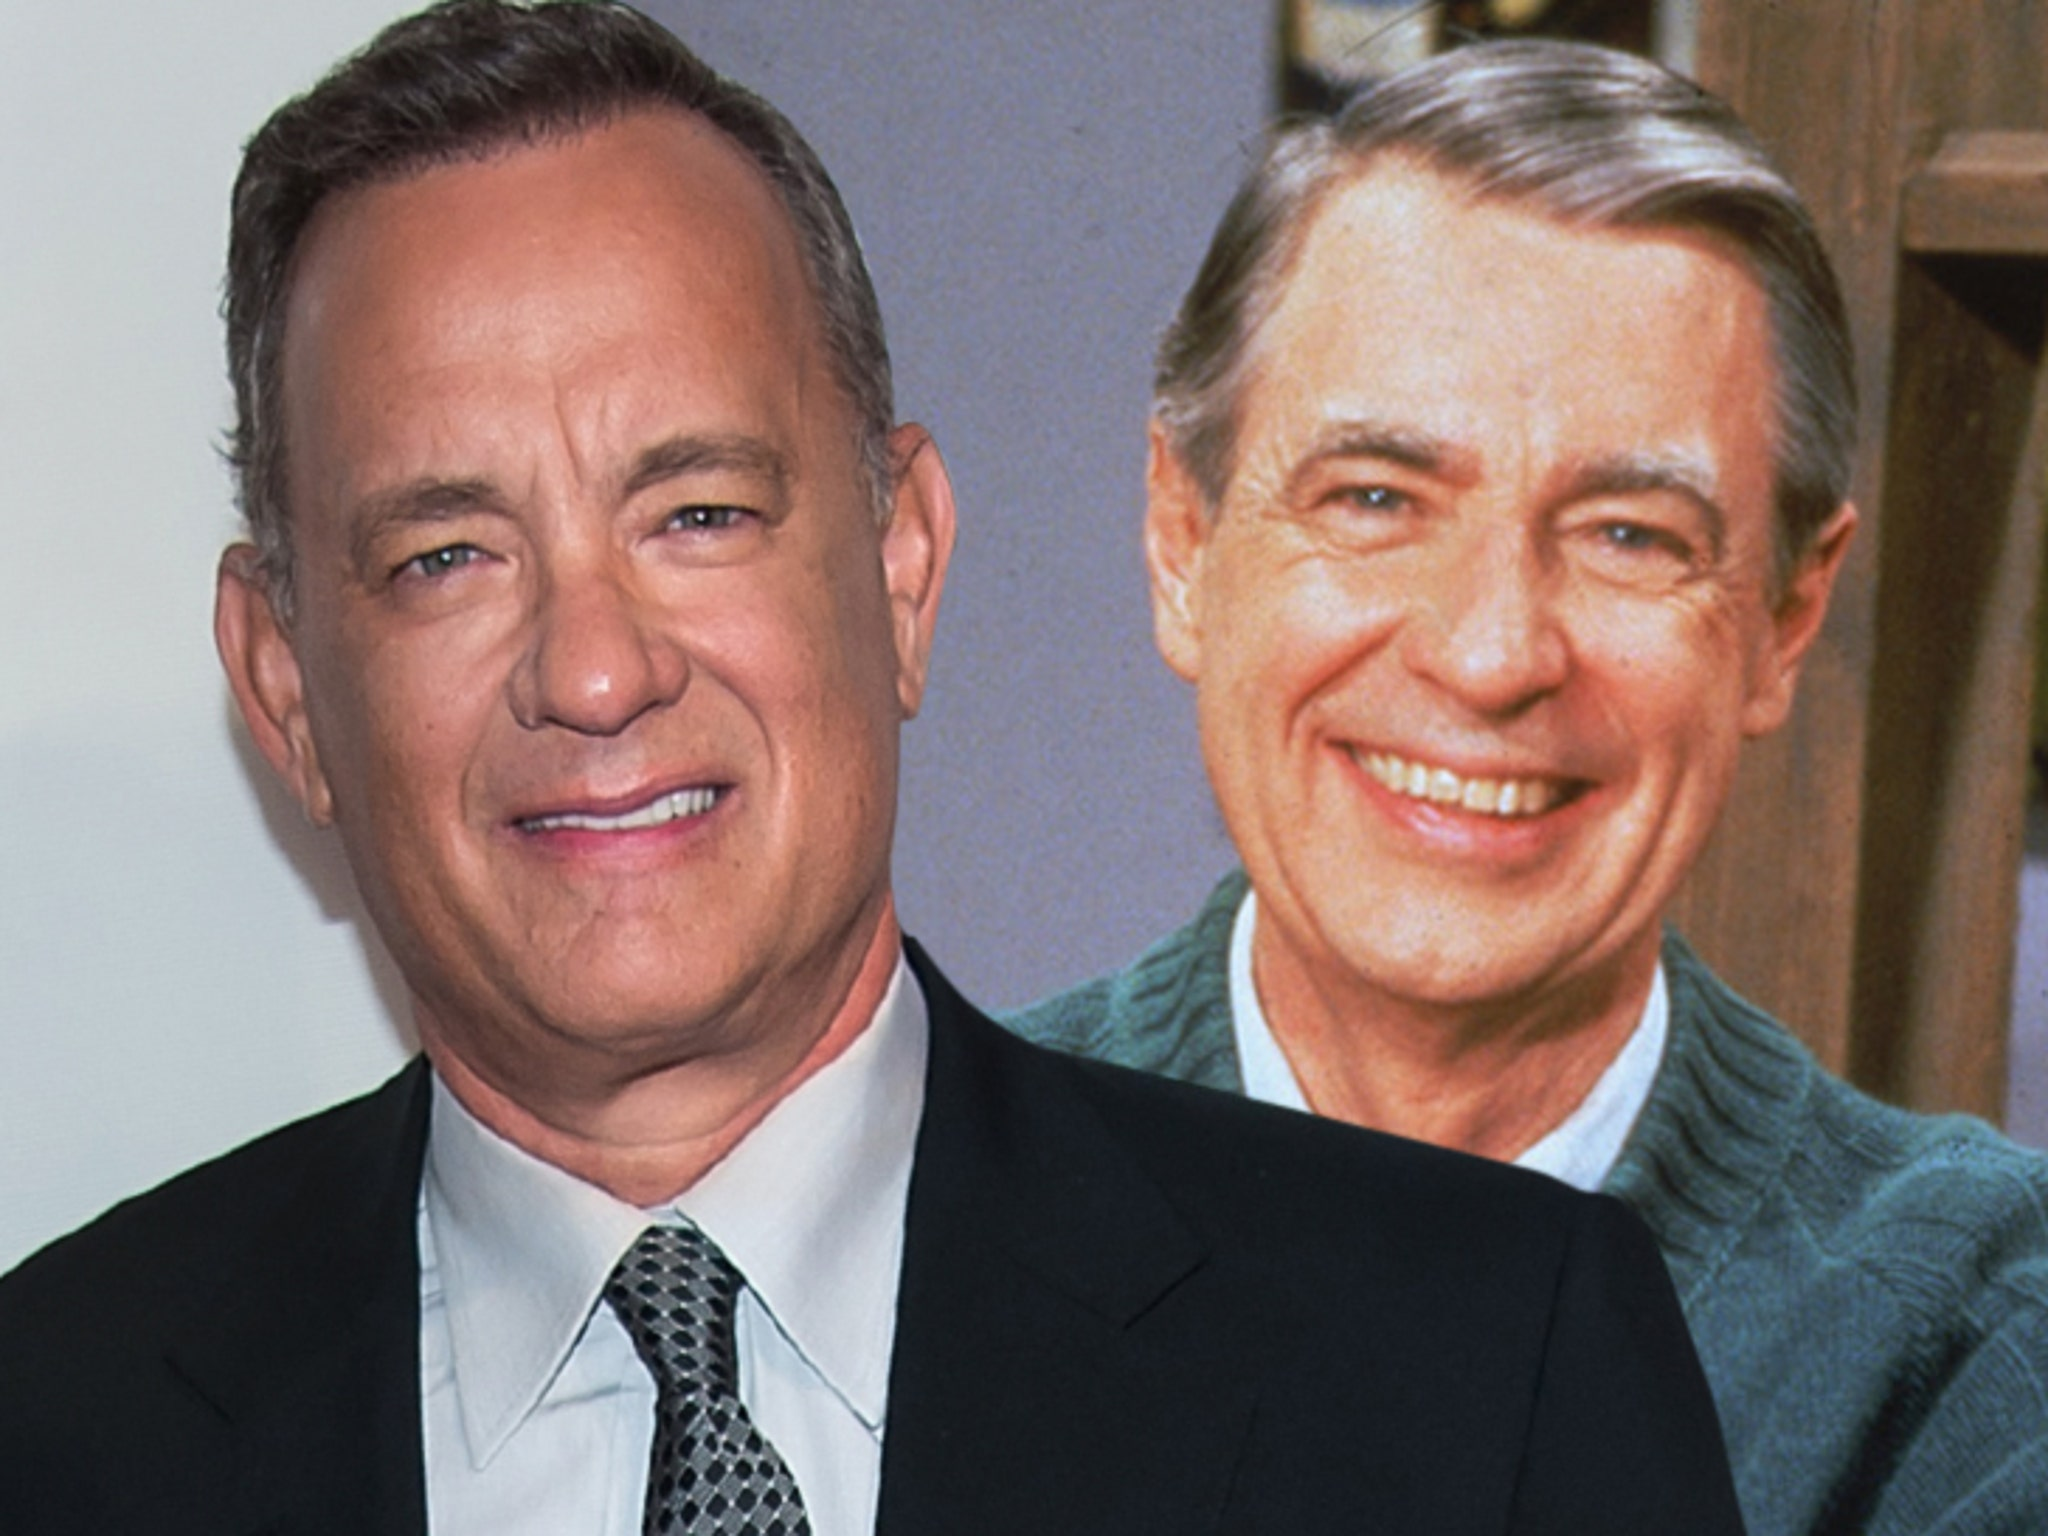 Mr Rogers Was A Big Tom Hanks Fan Says Son After Biopic Casting